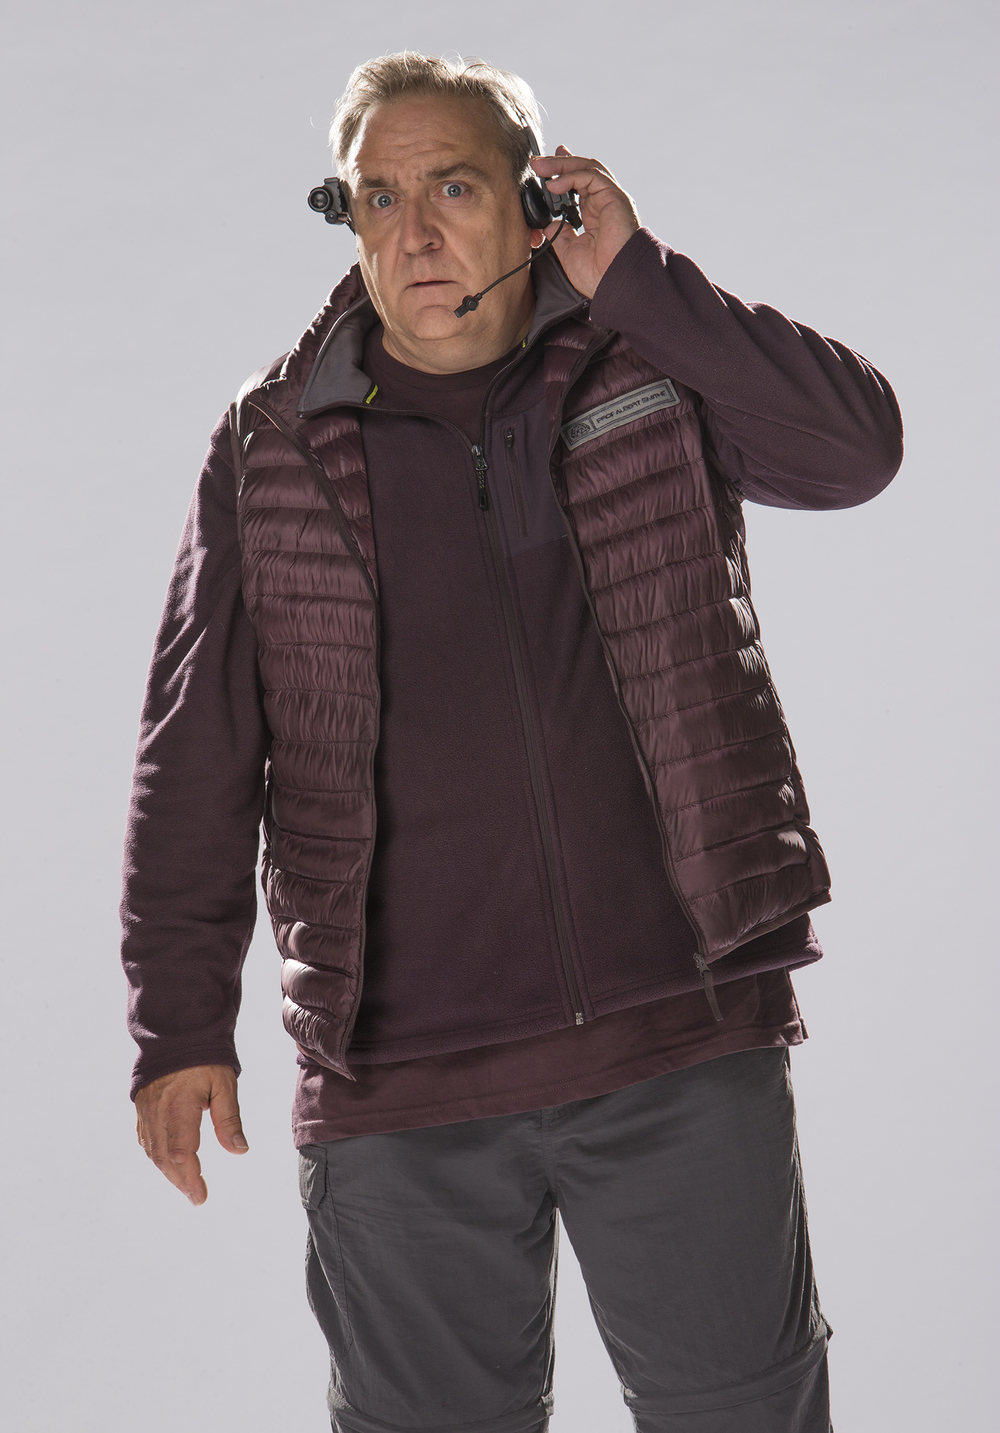 Michael Troughton as Professor Albert image - ABC Publicity